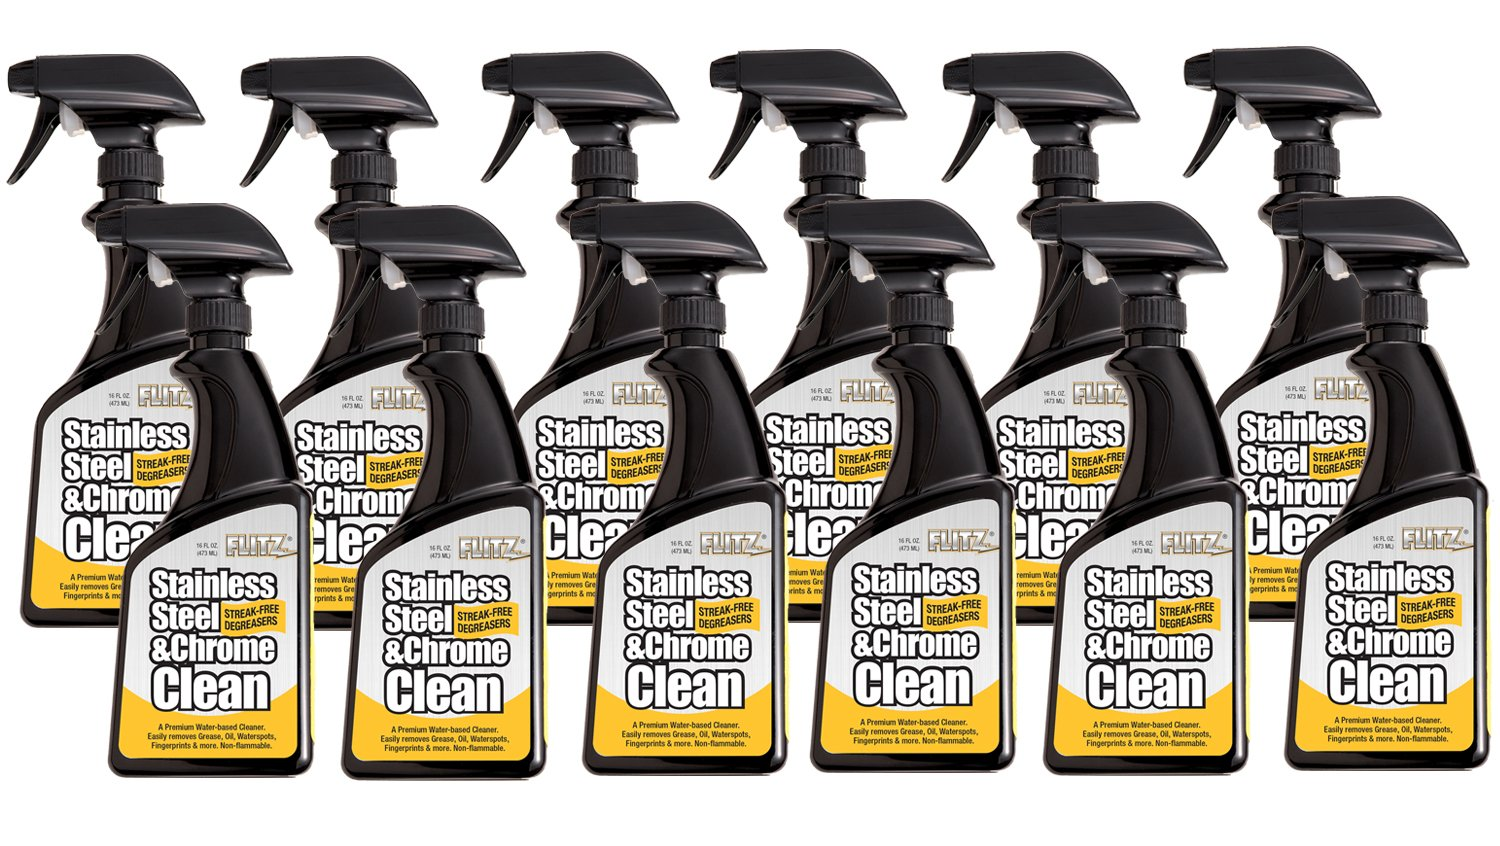 Flitz SP 01506-12A Stainless Steel Cleaner and Polish for Appliances, Streak Free Shine for Refrigerators, Dishwashers, Sinks, BBQ Grills, Ovens and More, 16 oz, 12 Pack, 16. Fluid_Ounces by Flitz